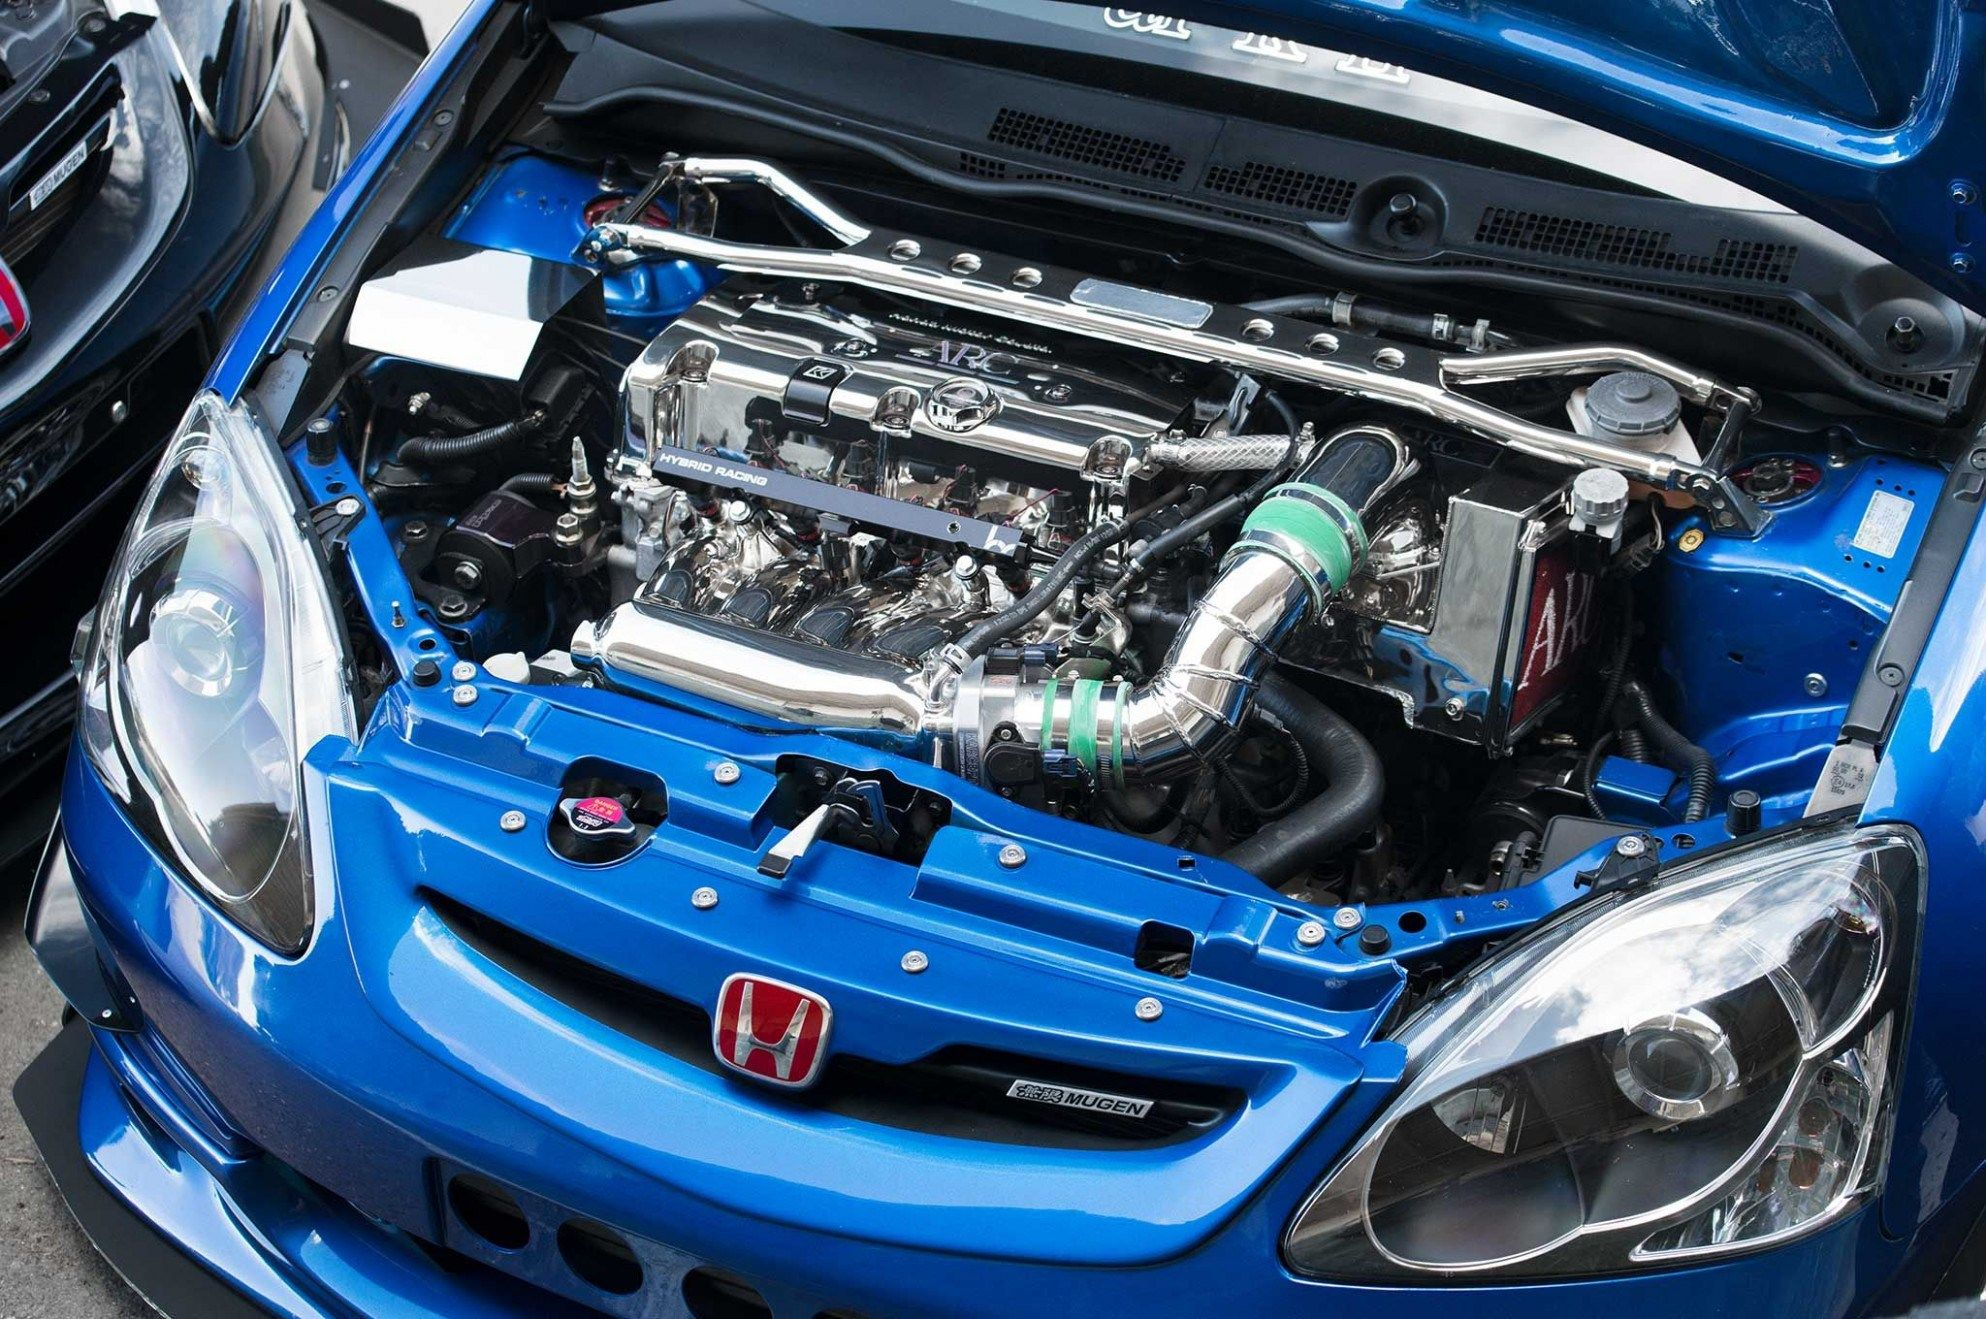 Ten Important Facts That You Should Know About Best Tunable Cars Under 15k Best Tunable Cars Under 15k Https Ift Tt 2b58hbg